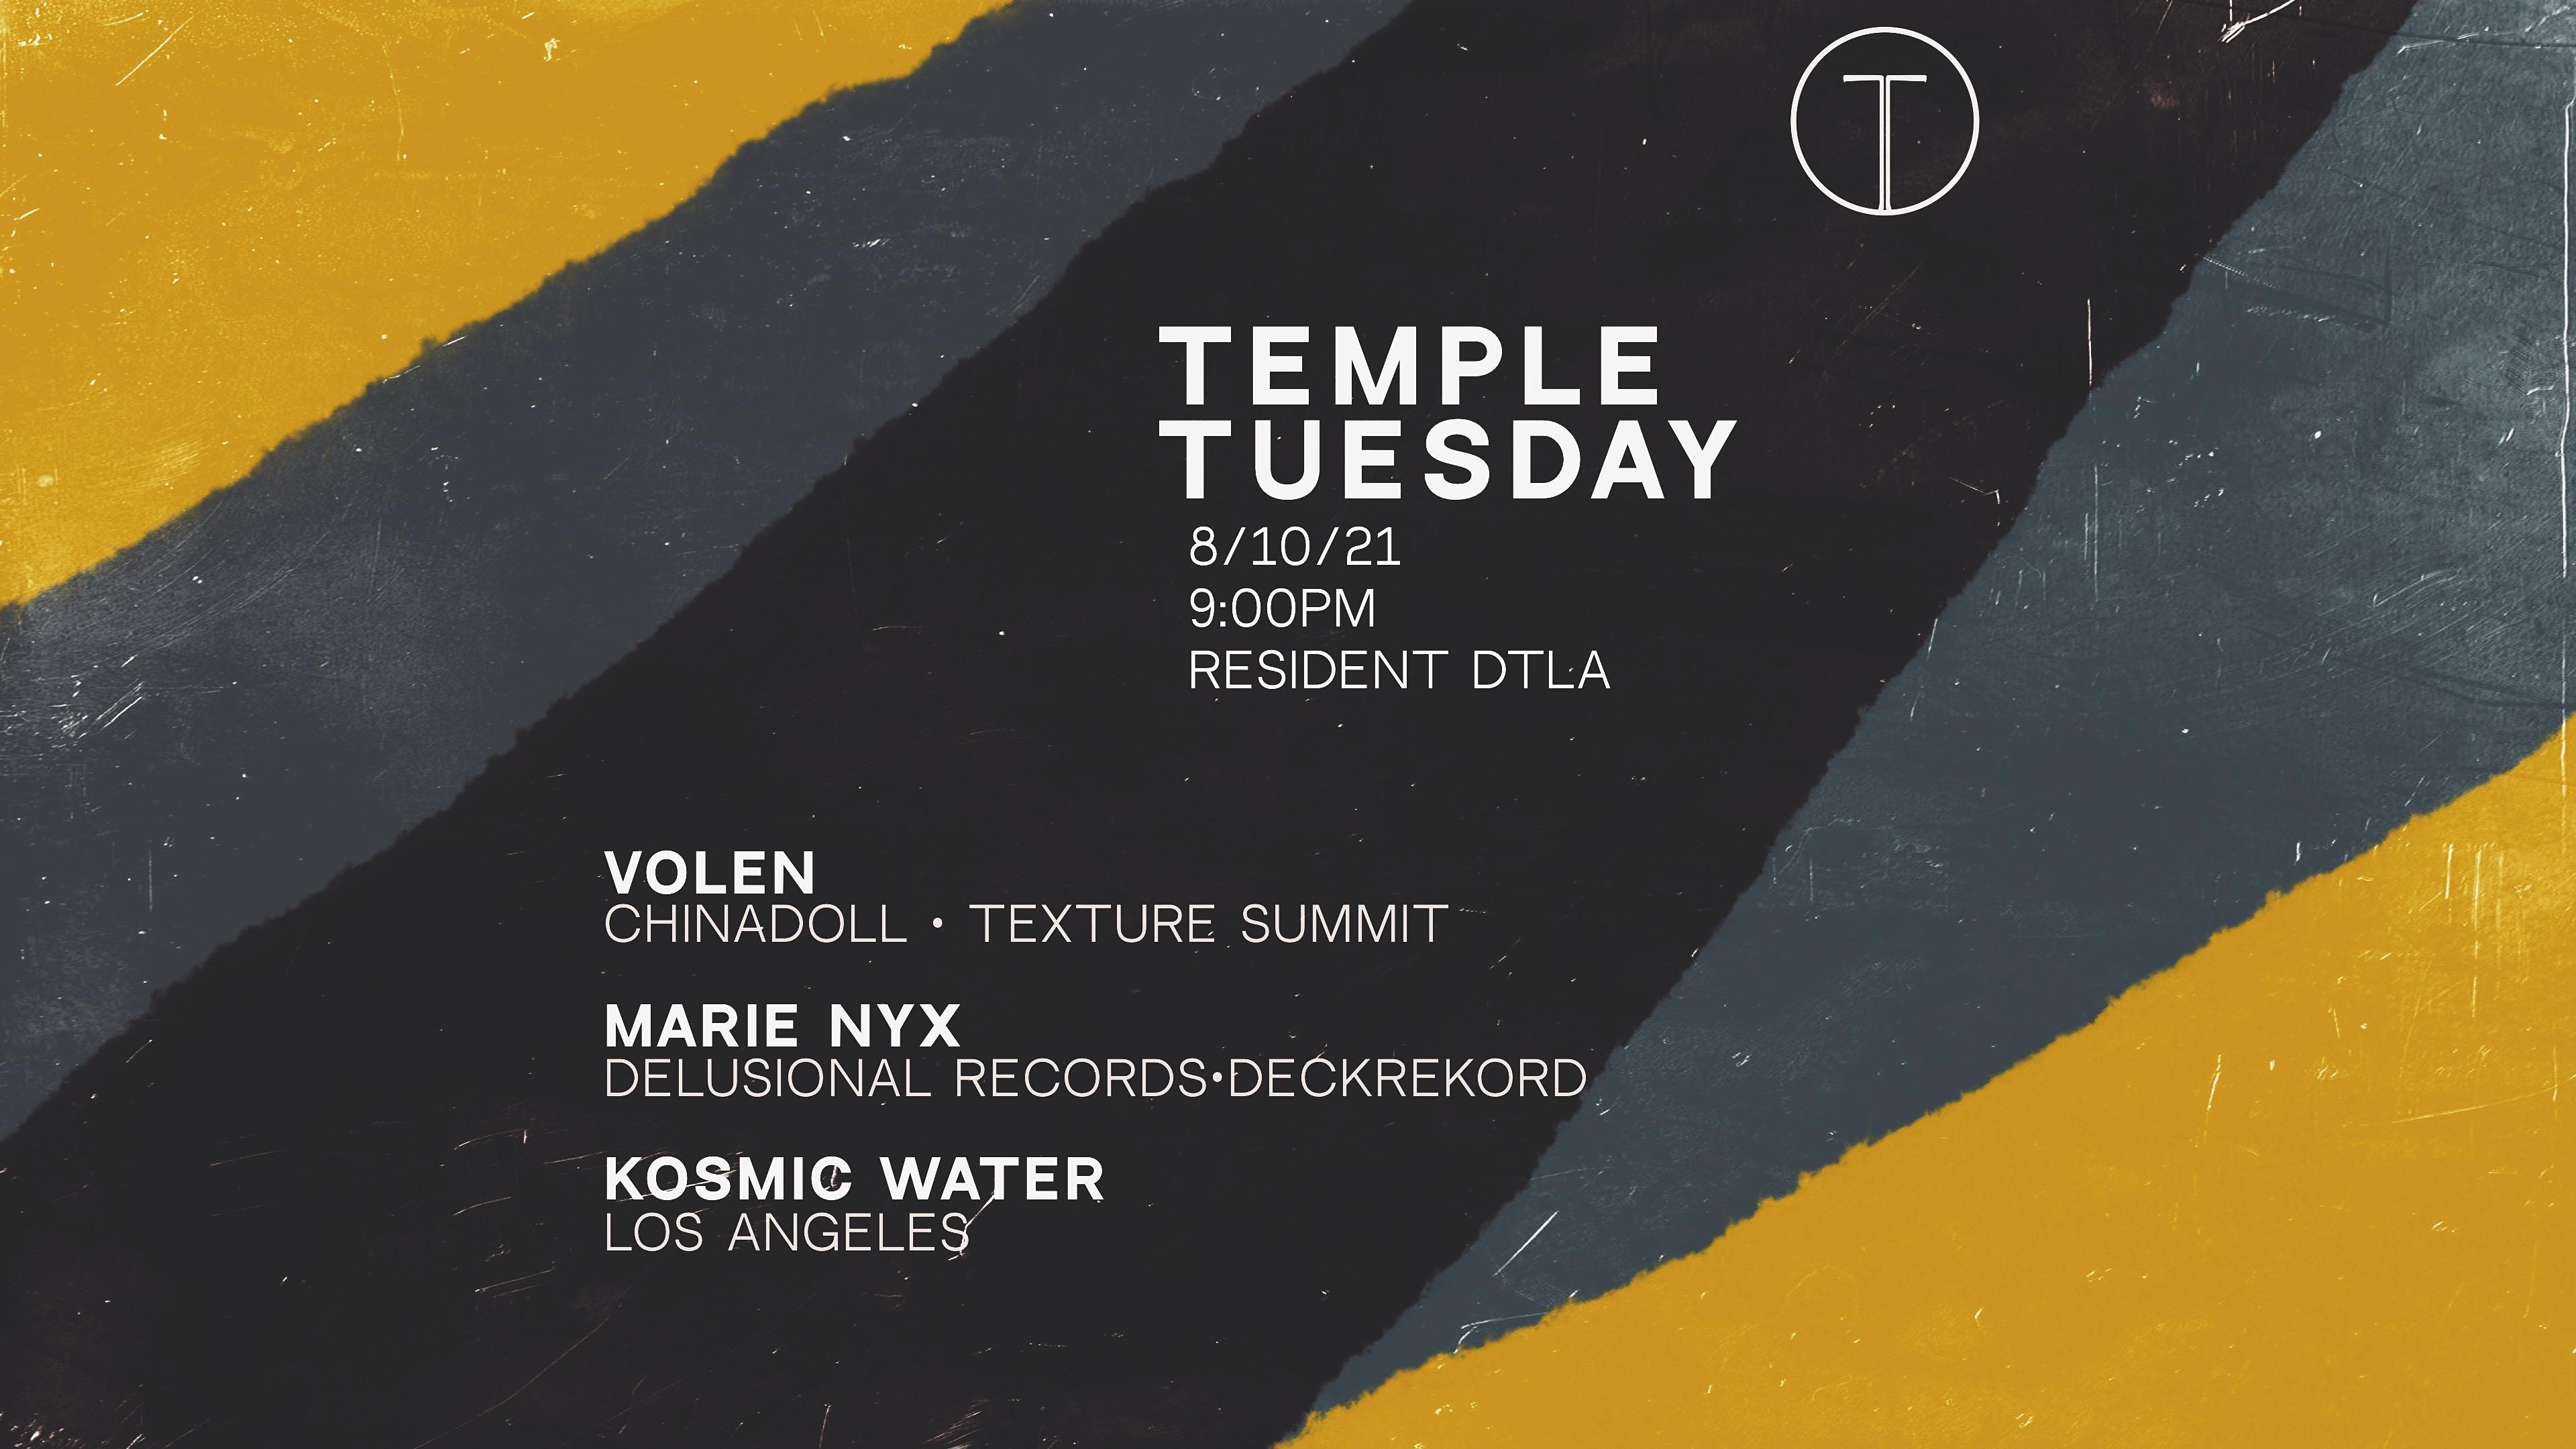 Temple Tuesday